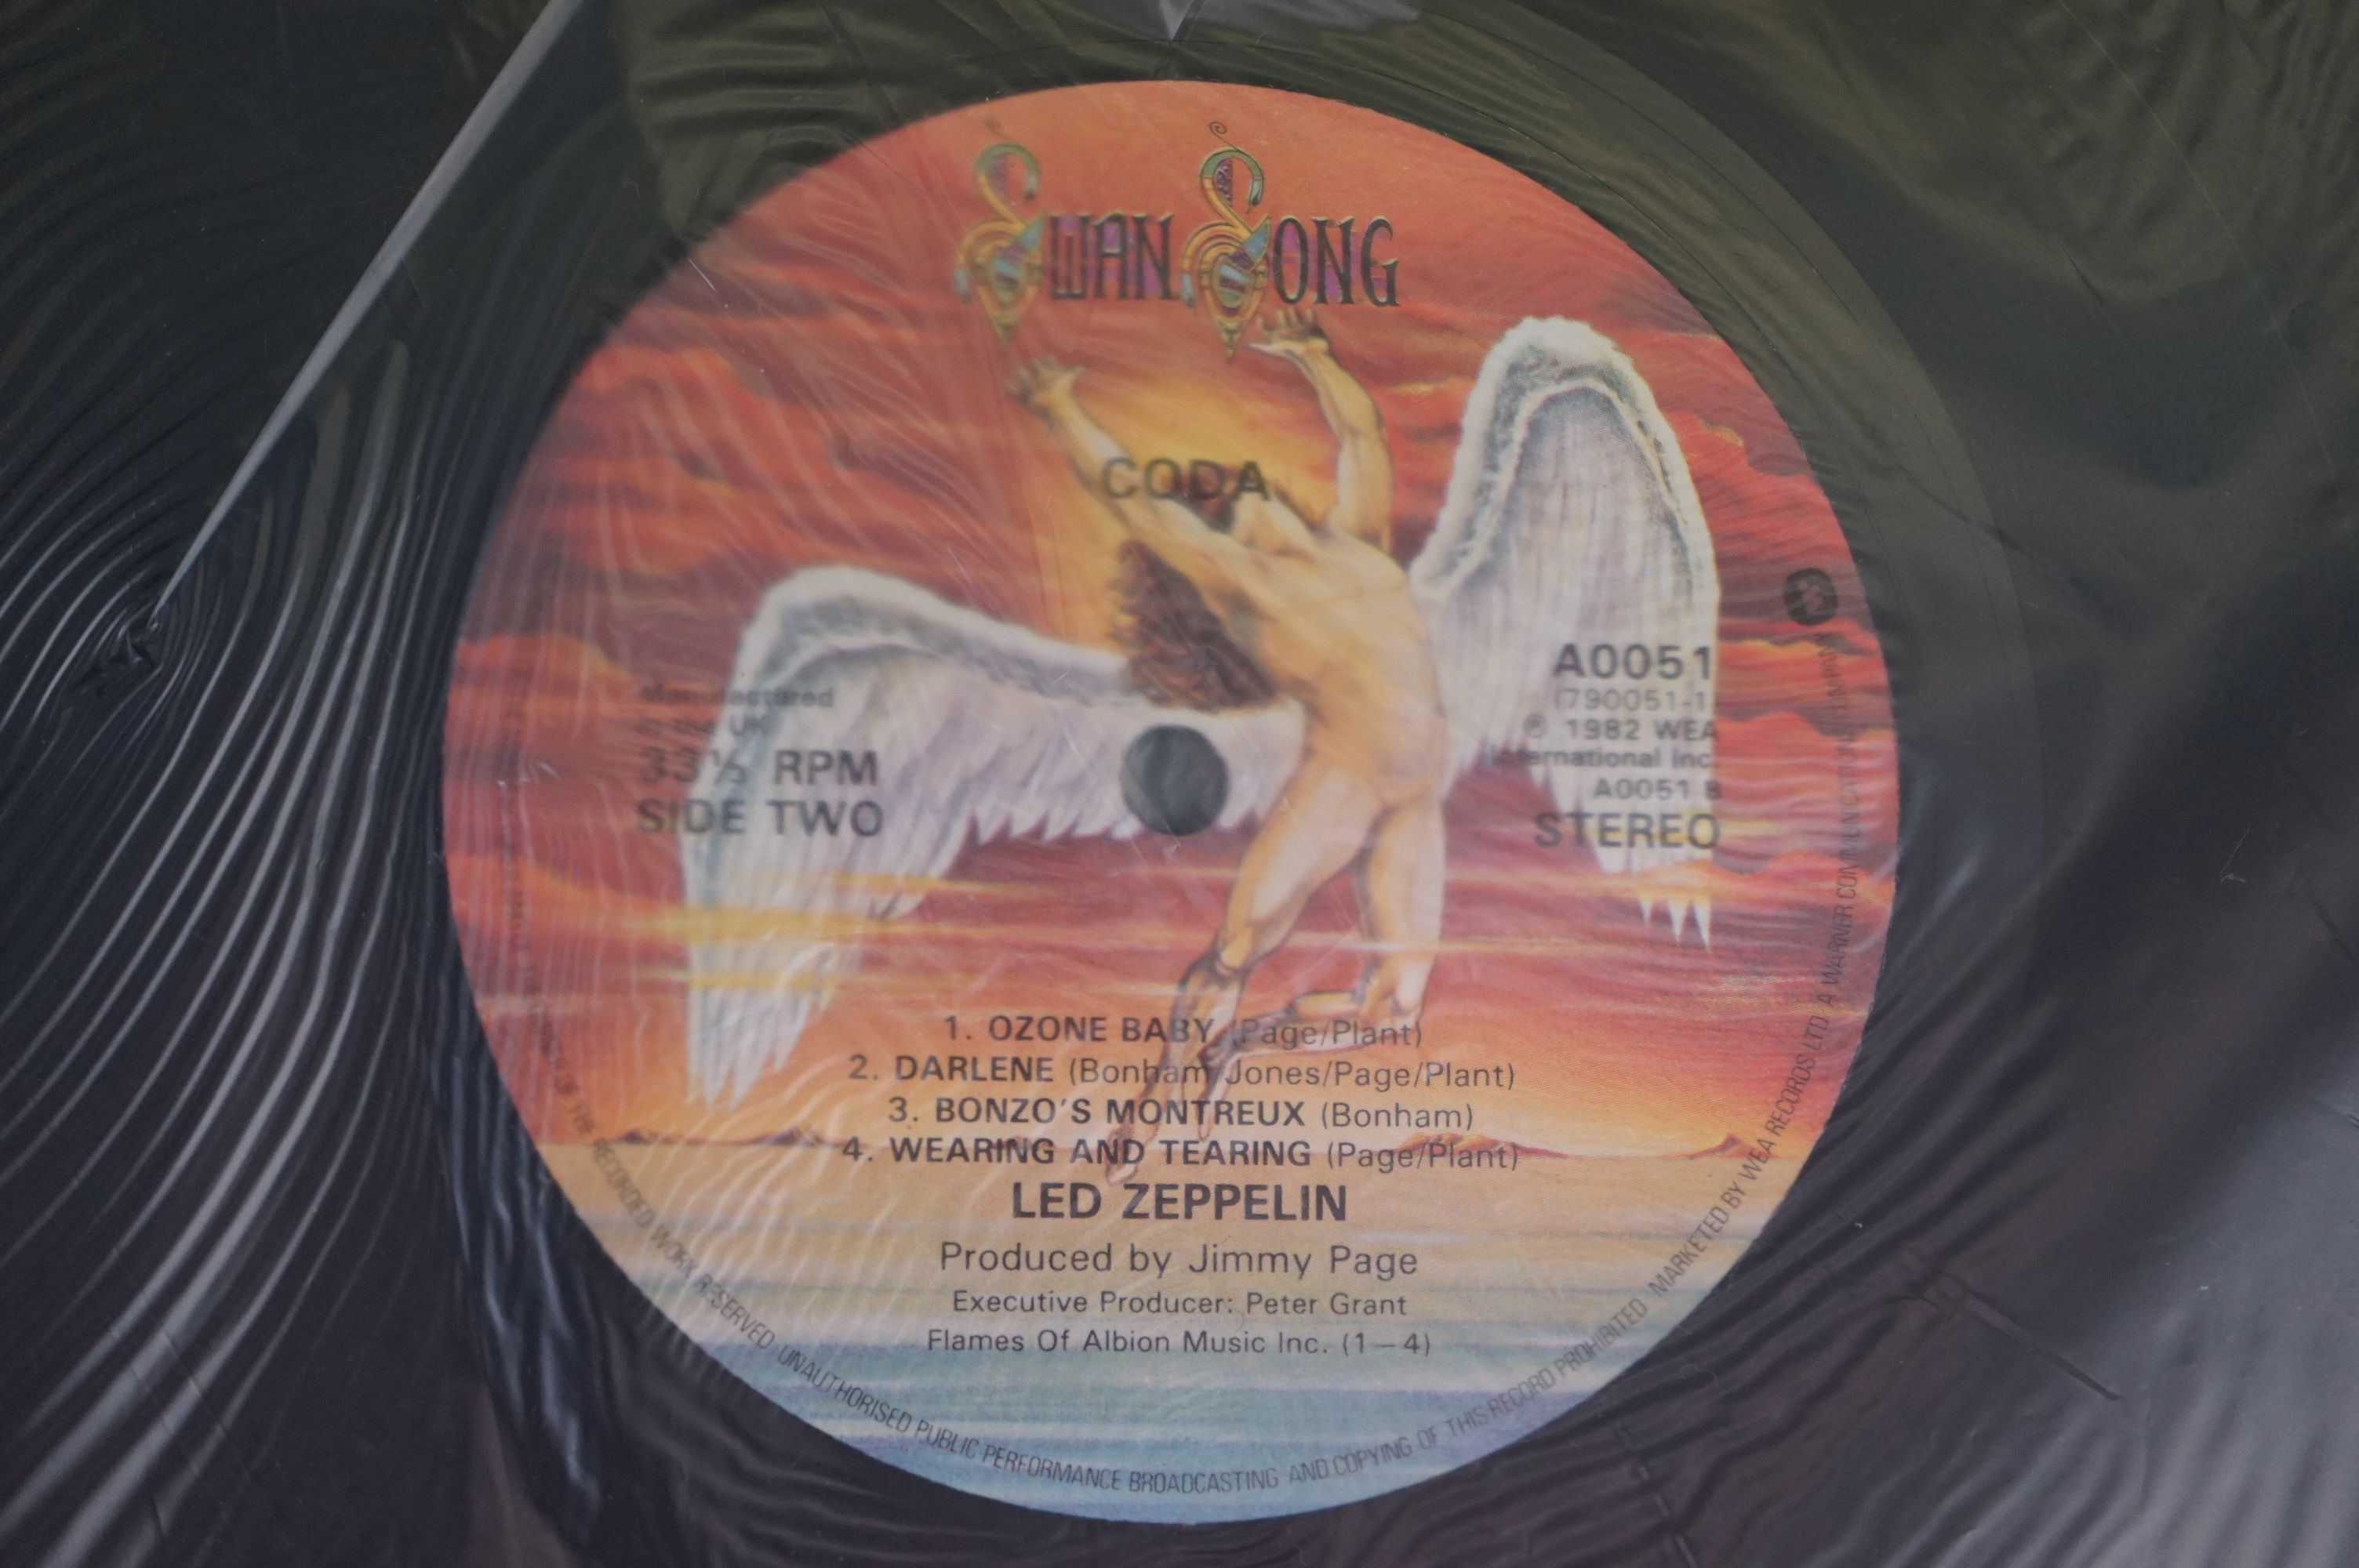 Vinyl - Six Led Zeppelin LPs to include In Through the Outdoor (cover D) SSK59410, Coda 790051, 2 - Image 8 of 17